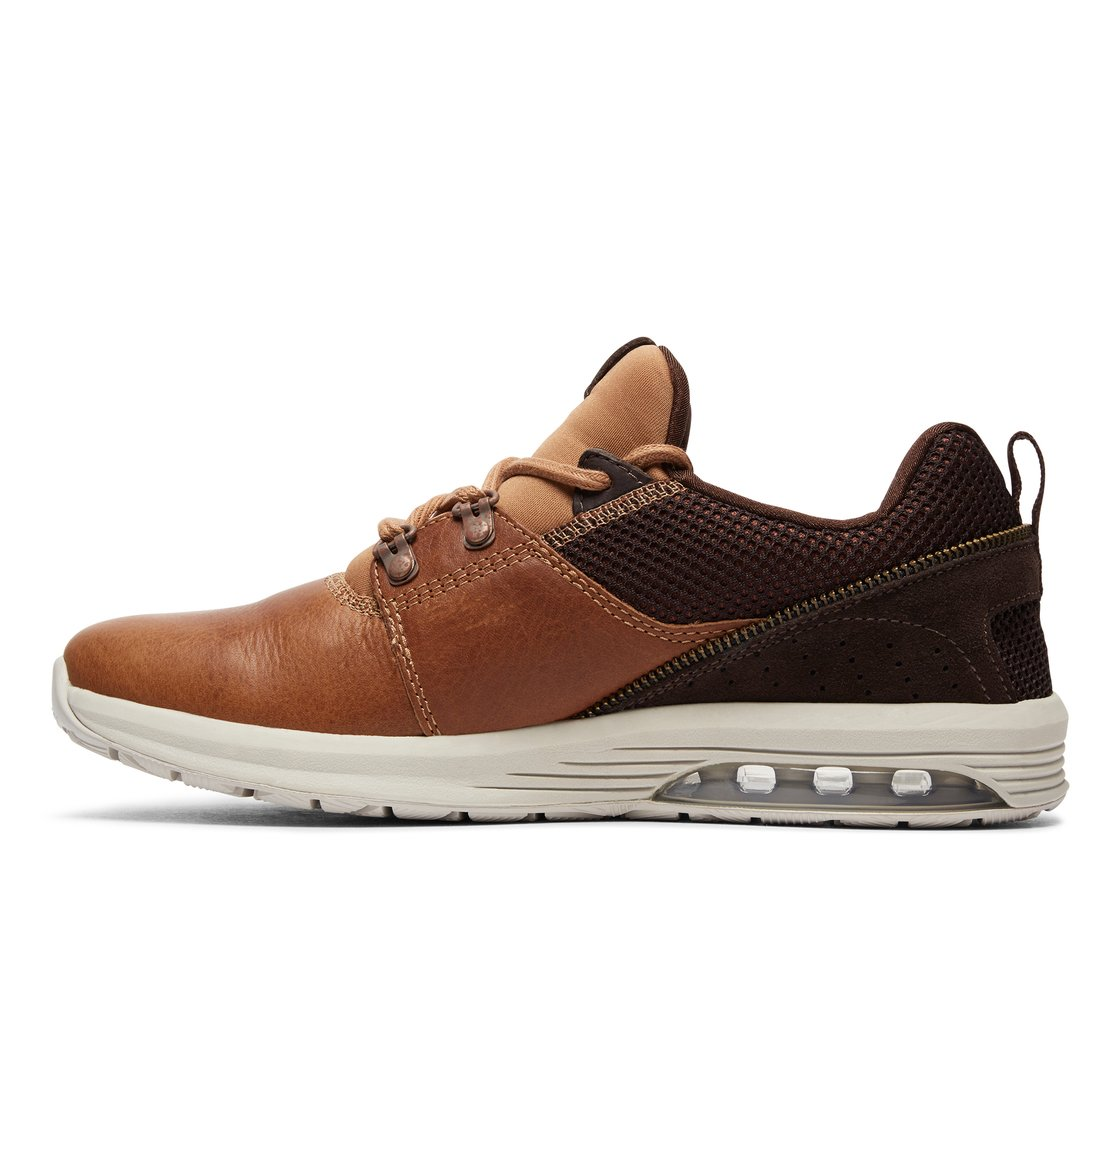 Chaussures DC Shoes Heathrow marron Casual homme mDFP0Rth